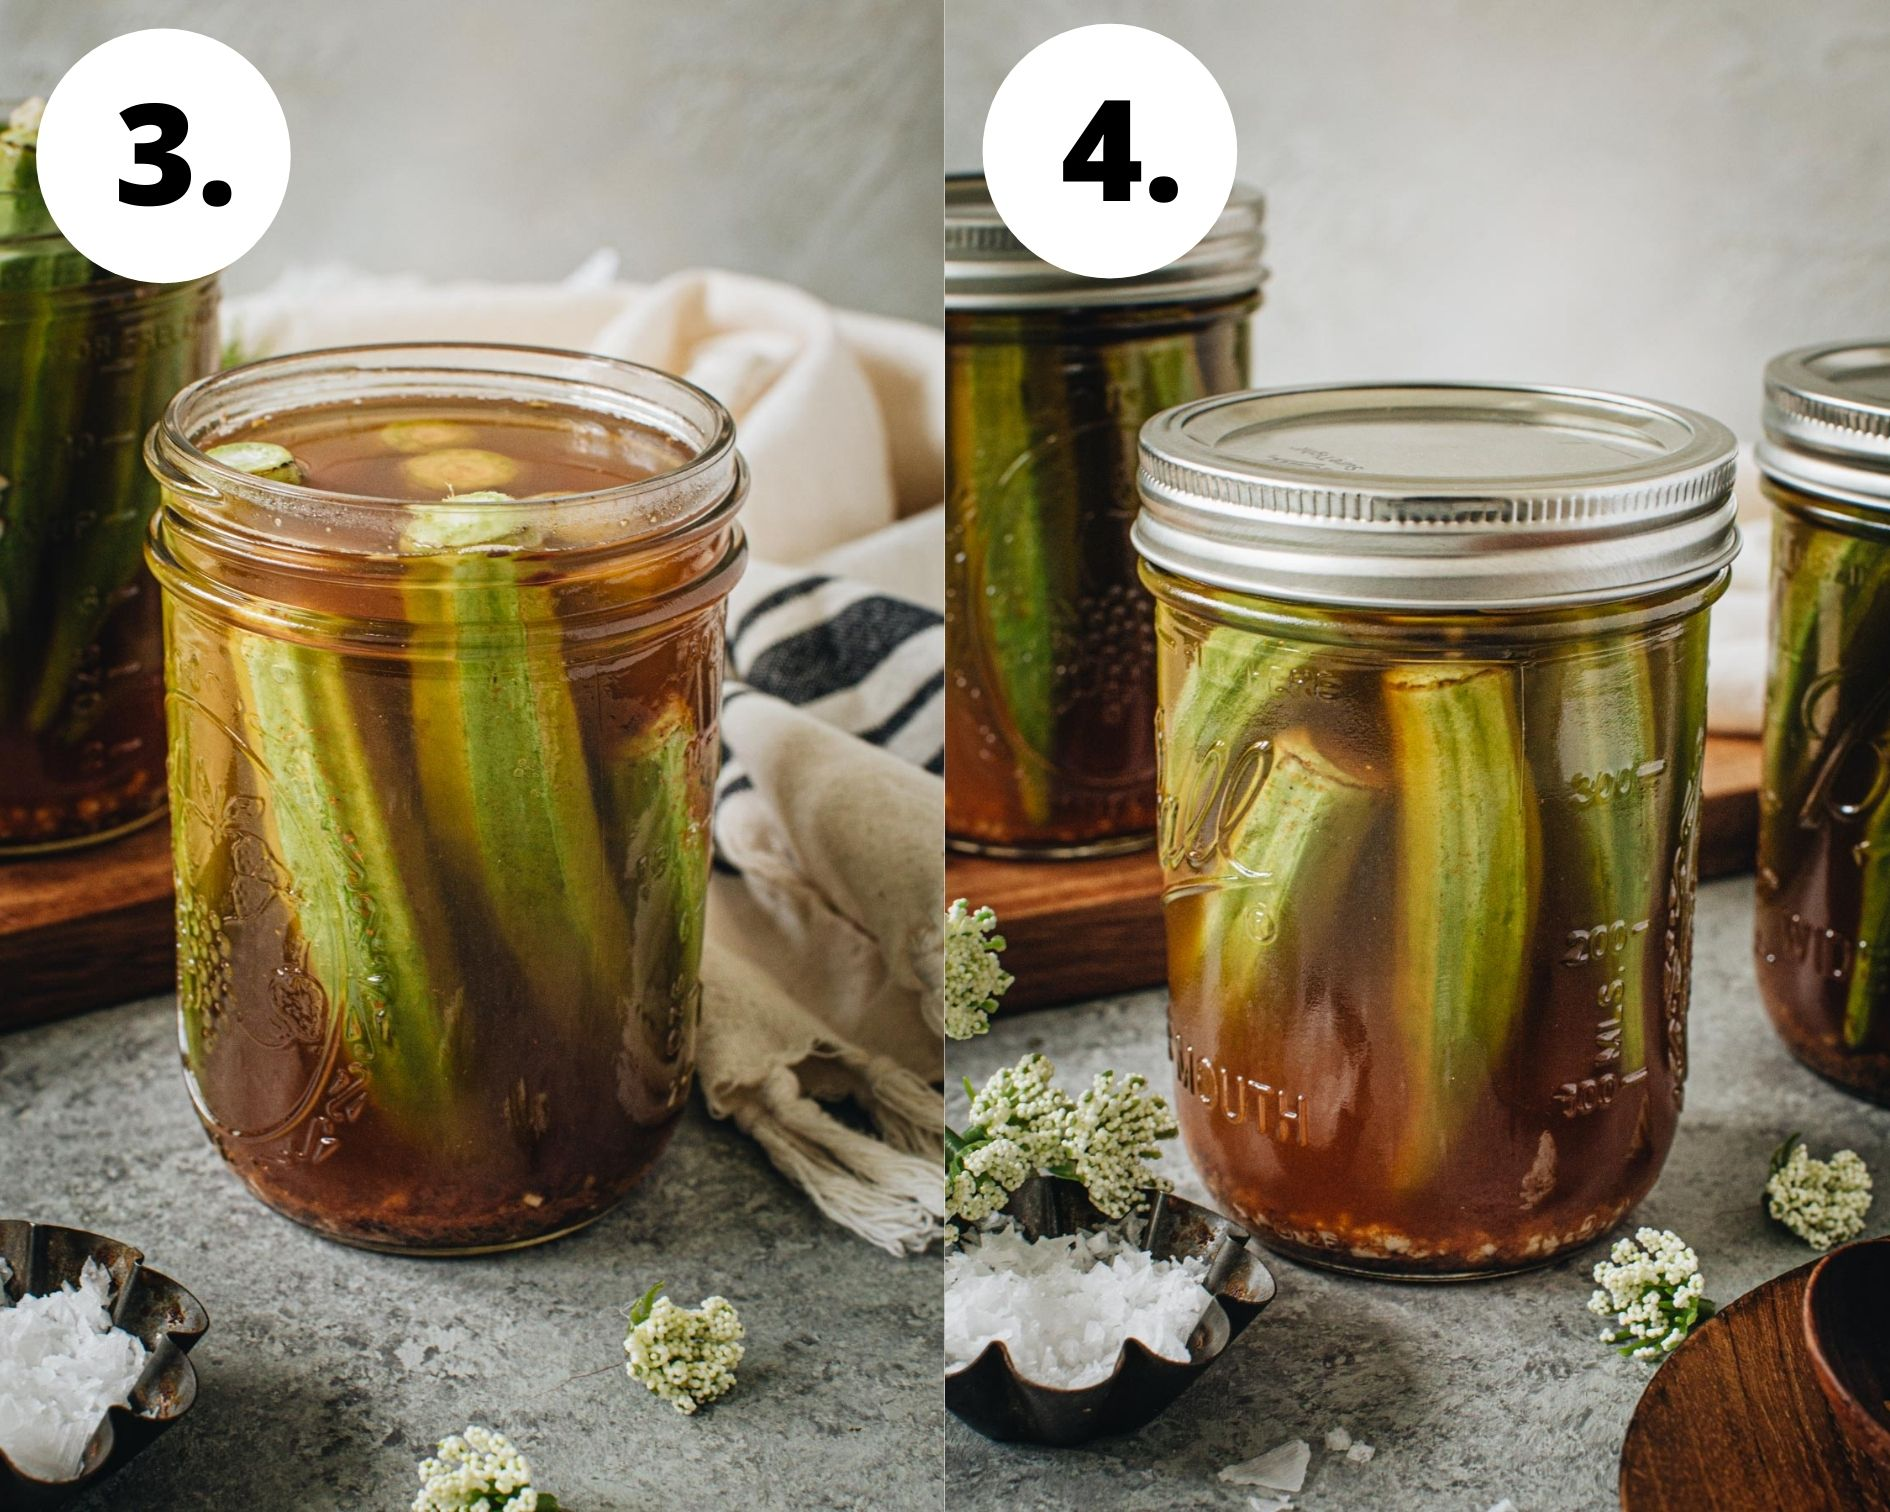 Pickled okra process steps 3 and 4.